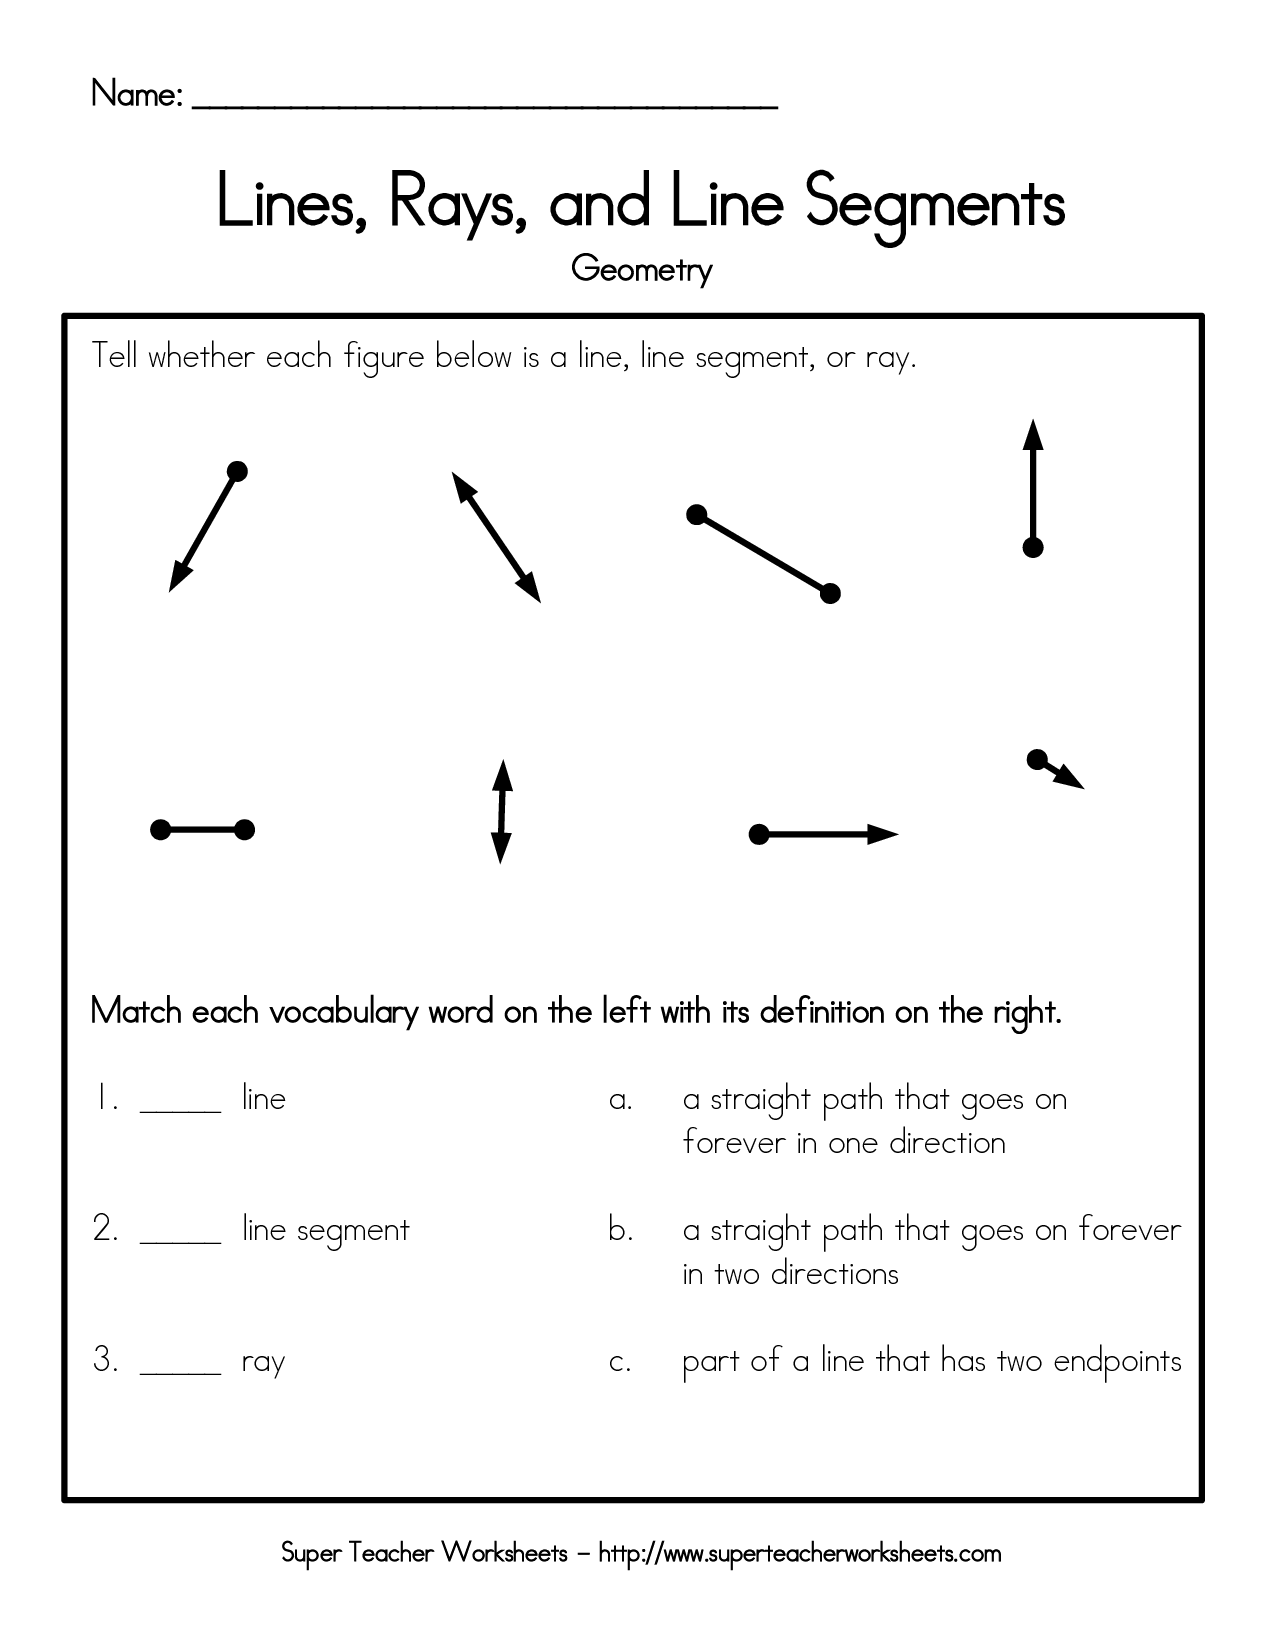 Naming Angles Worksheet 4th Grade